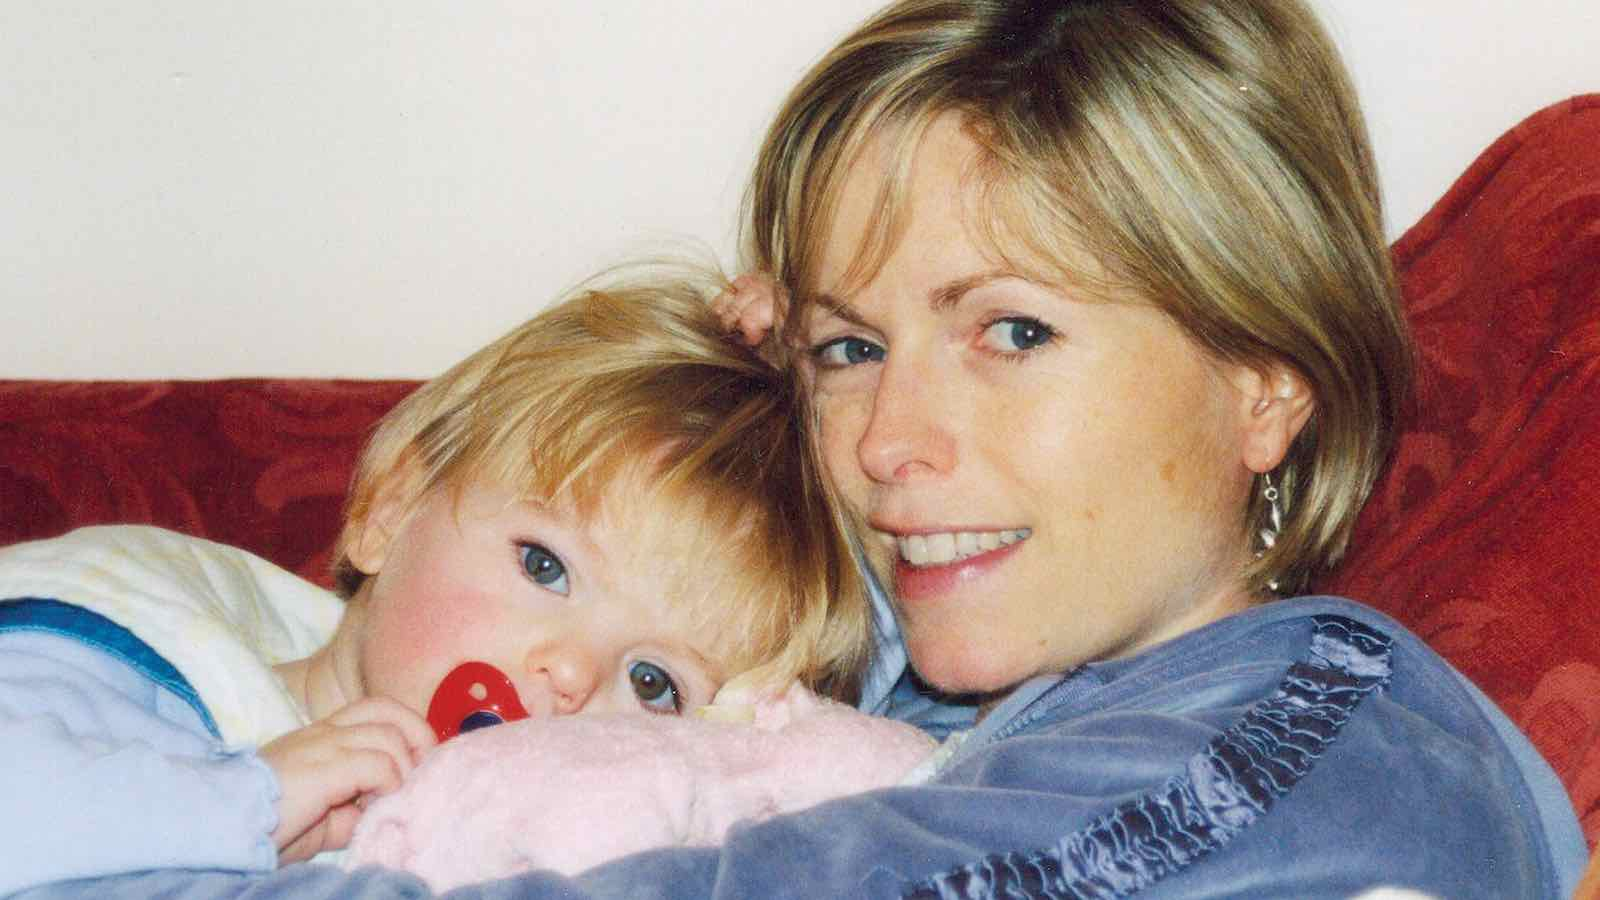 Netflix probes Madeleine McCann disappearance in new documentary - Page 15 The-Disappearance-of-Madeleine-McCann-5